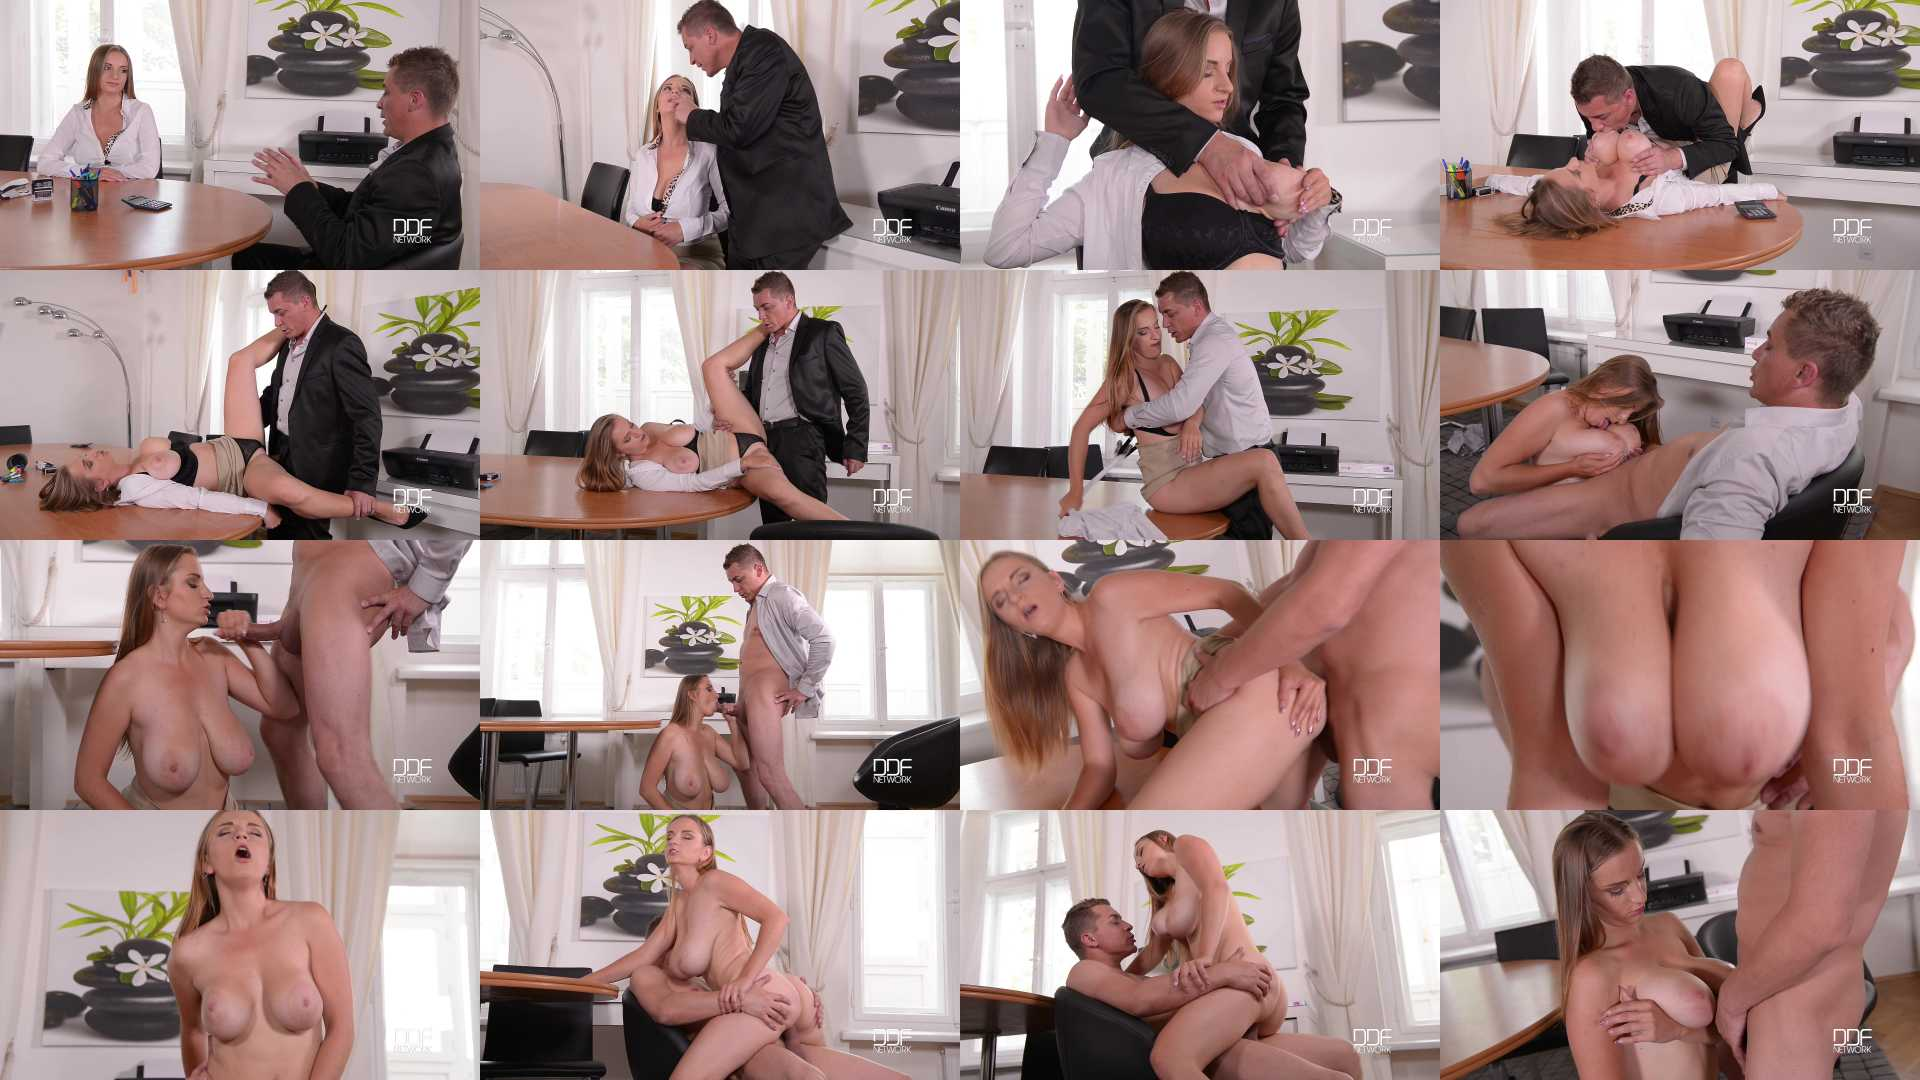 Suzie in Big Bang Fantasies - Busty Girl Next Door Gets Titty Fucked